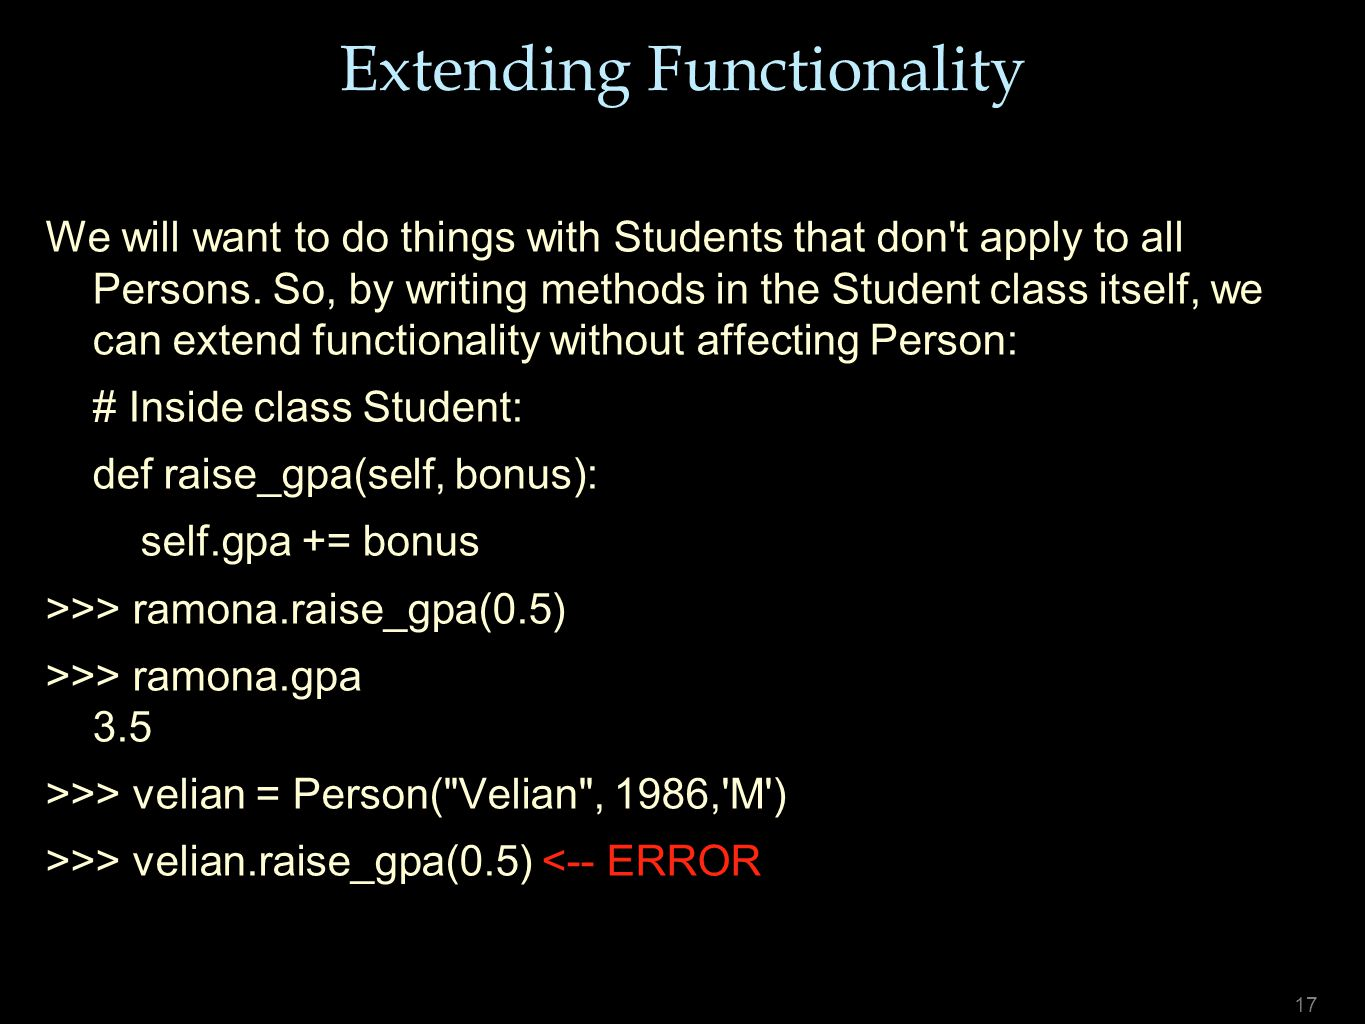 17 Extending Functionality We will want to do things with Students that don't apply to all Persons. So, by writing methods in the Student class itself